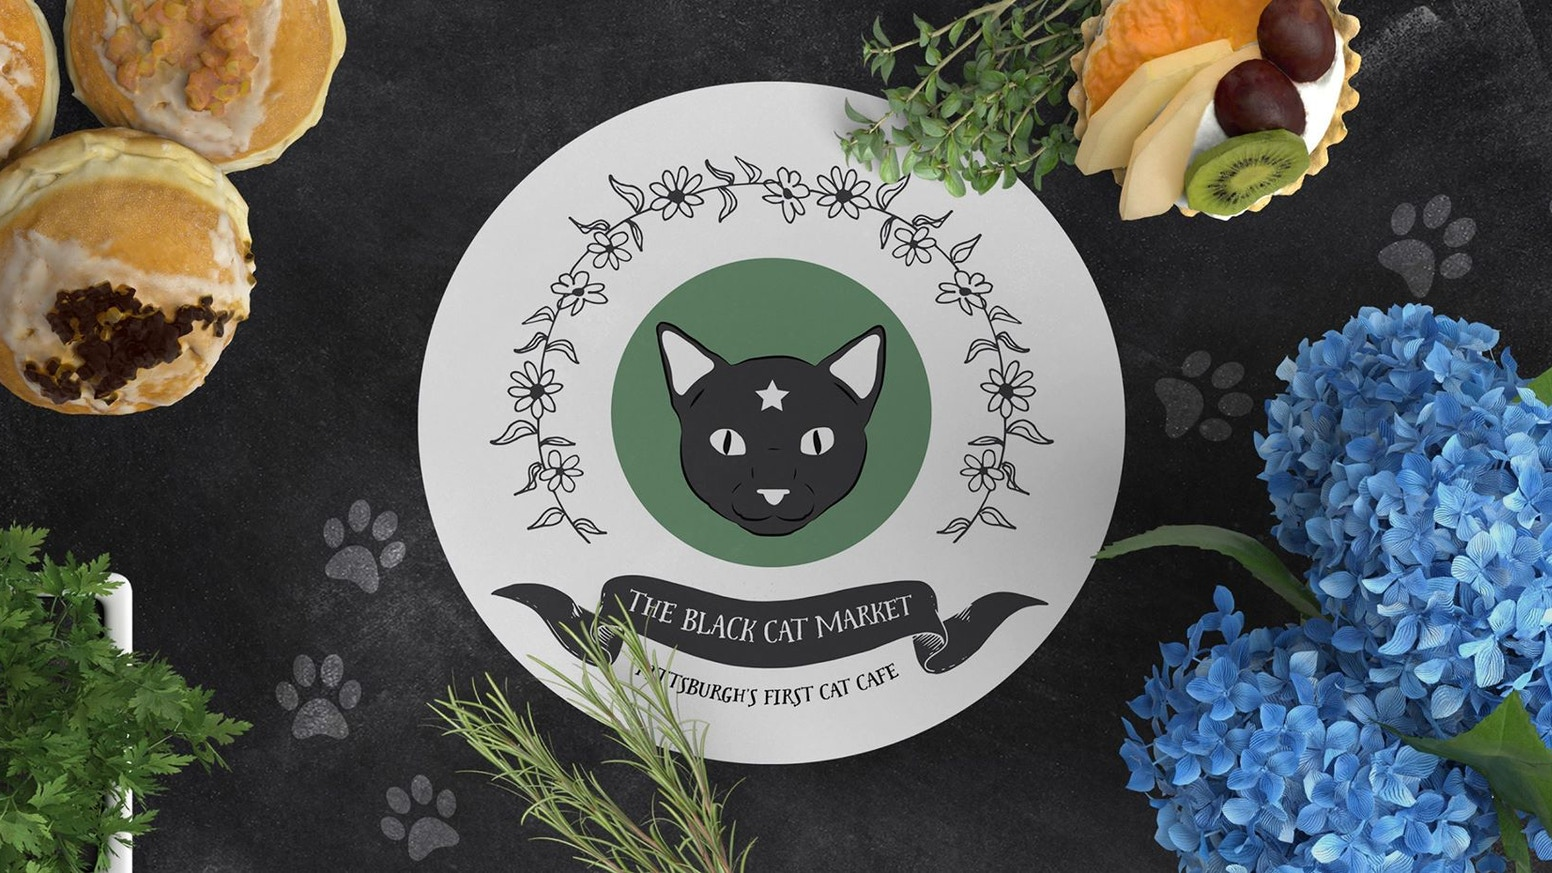 The Black Cat Market will be Pittsburgh's first cat cafe; where people can enjoy coffee while hanging out with adoptable cats!